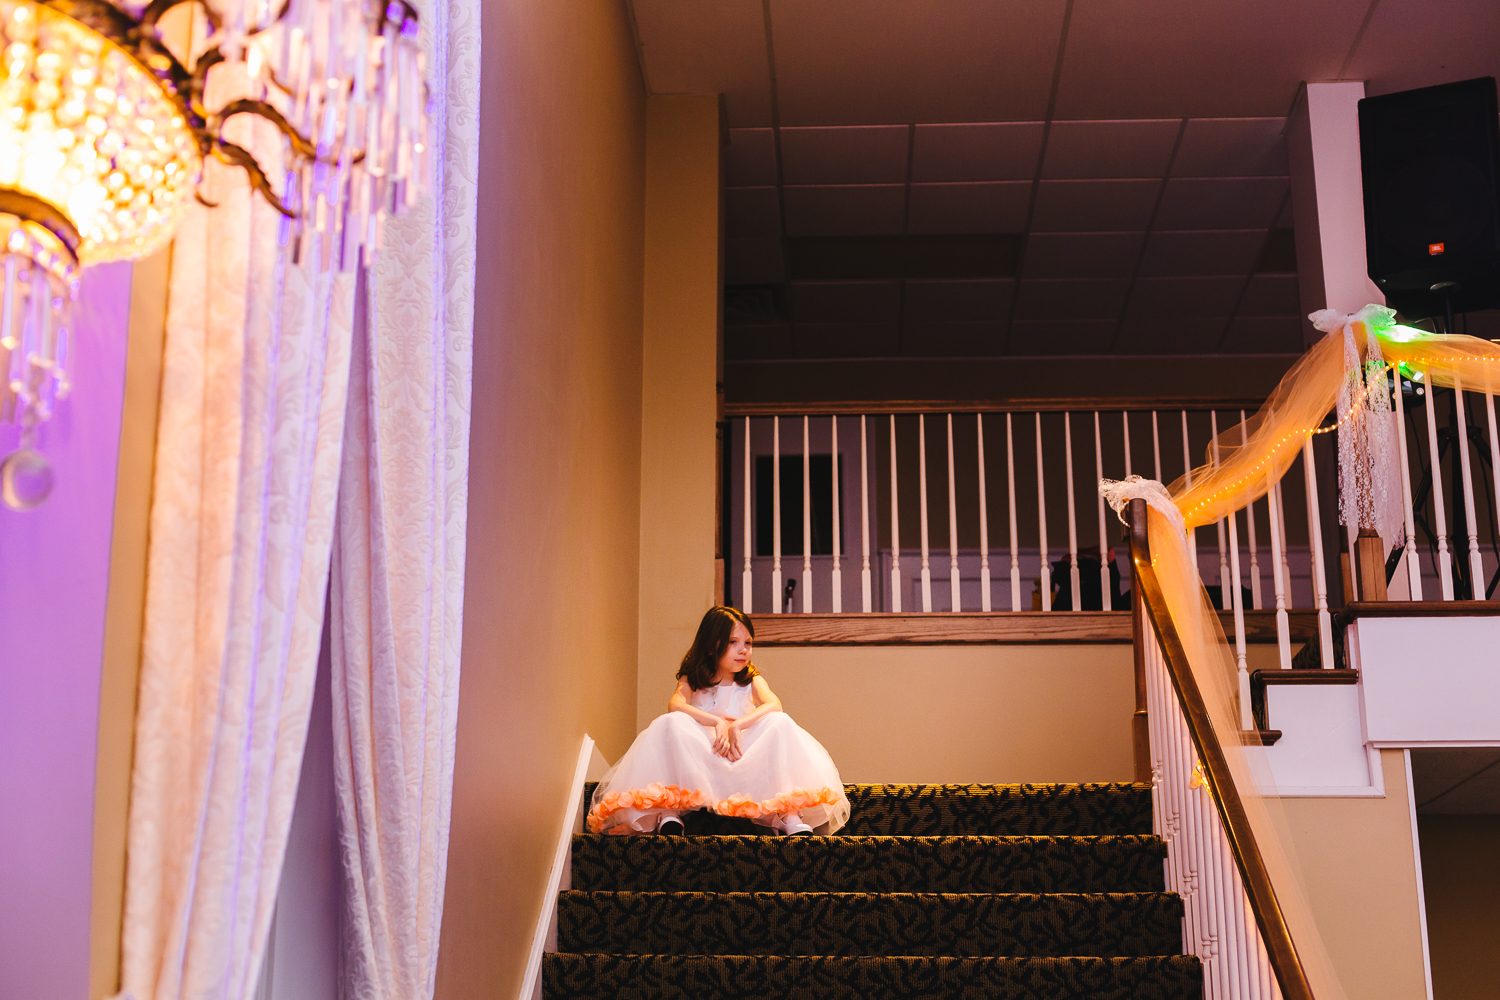 Flower girl sits on the stairs at the wedding reception. She is looking down on the dance floor.